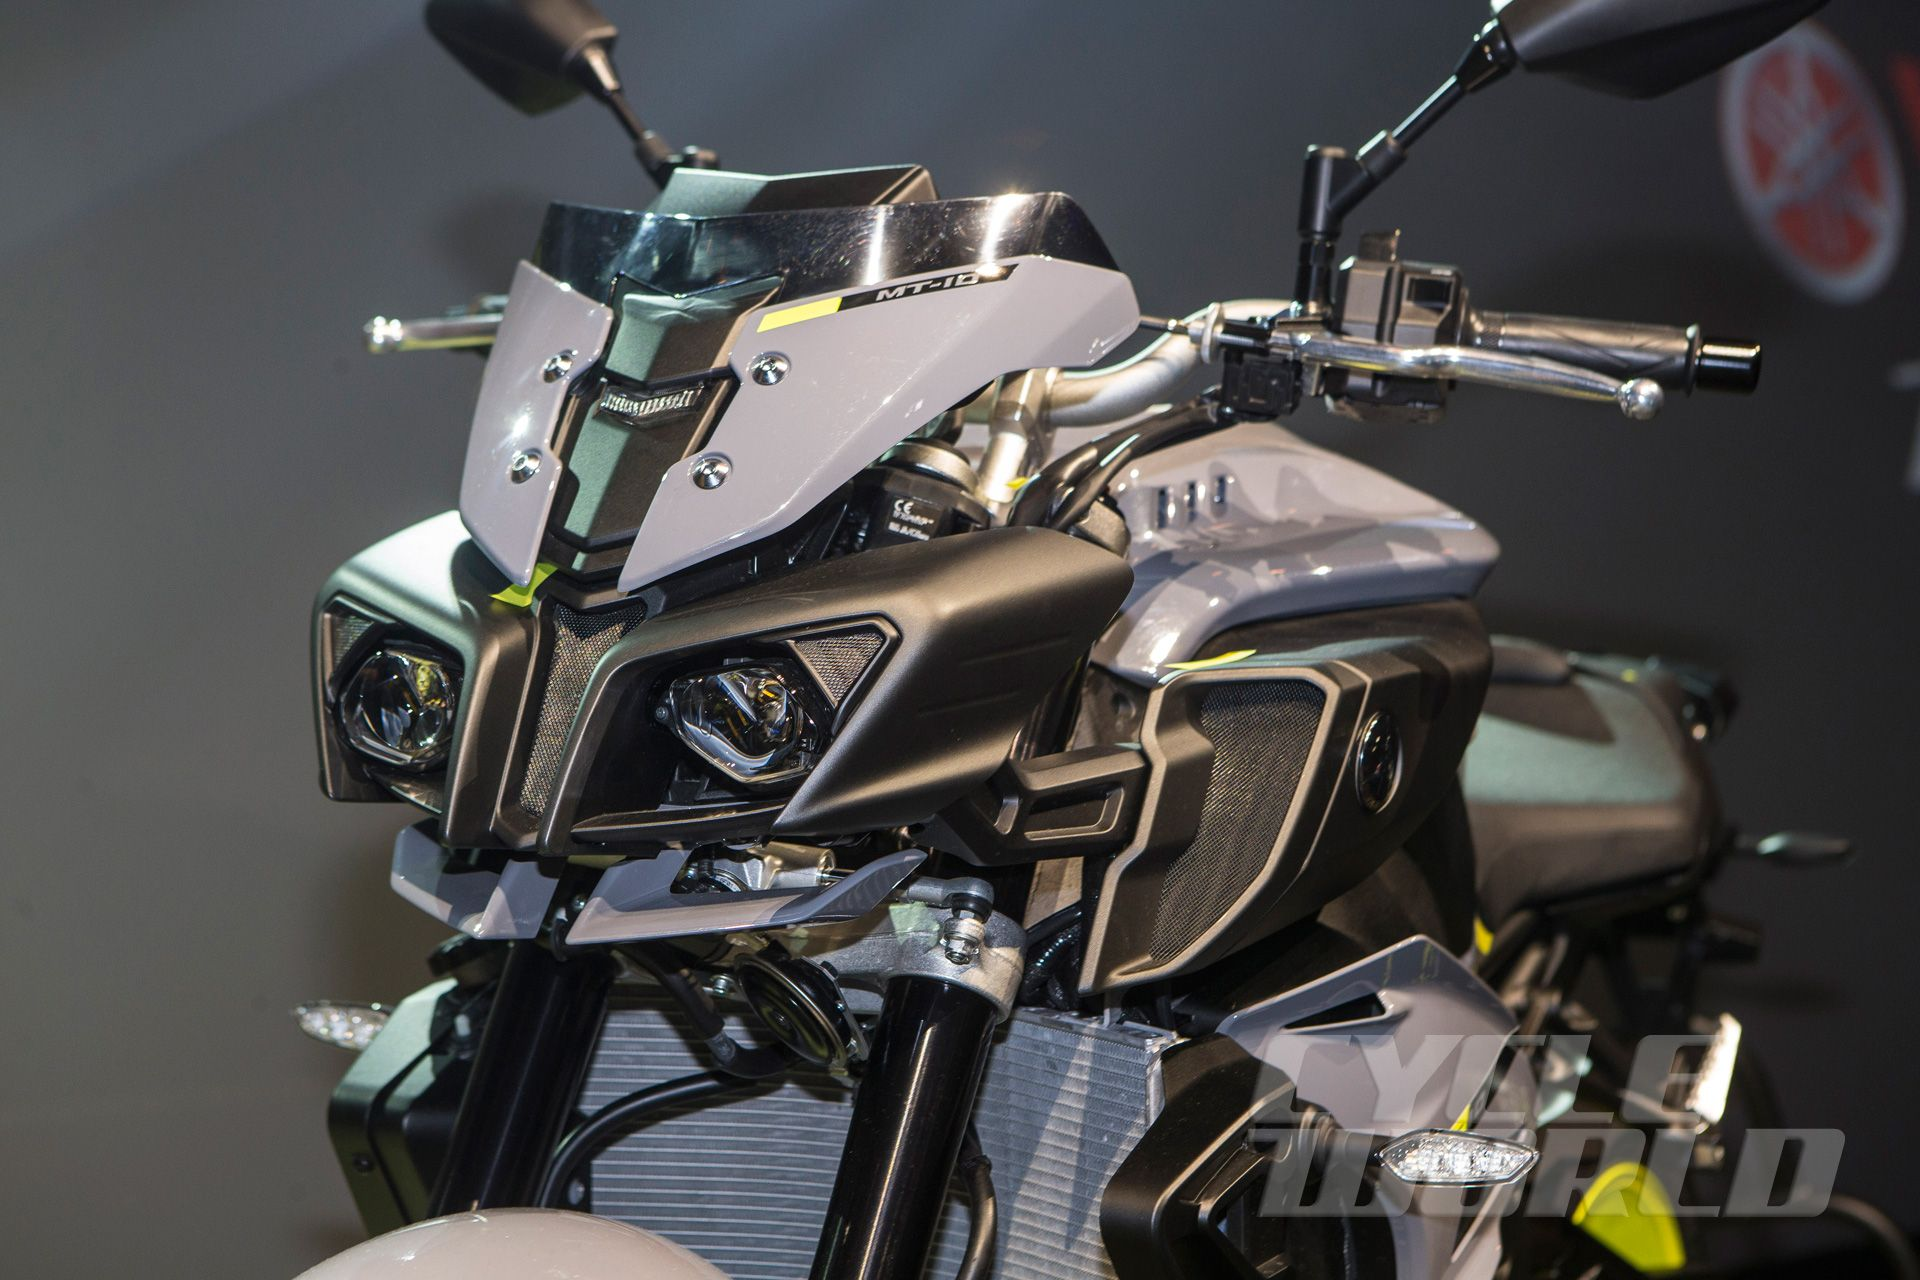 2016 Yamaha MT-03 Naked Motorcycle Review, Specs, Photos